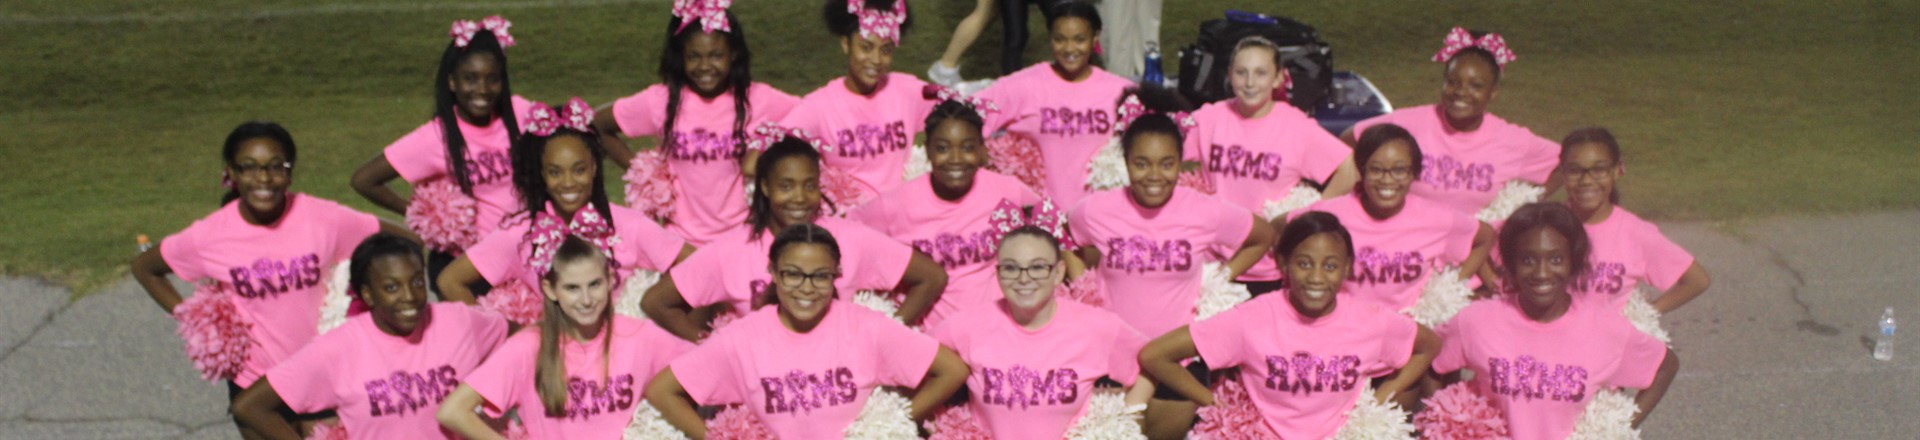 Friday Night Lights - Pink Out